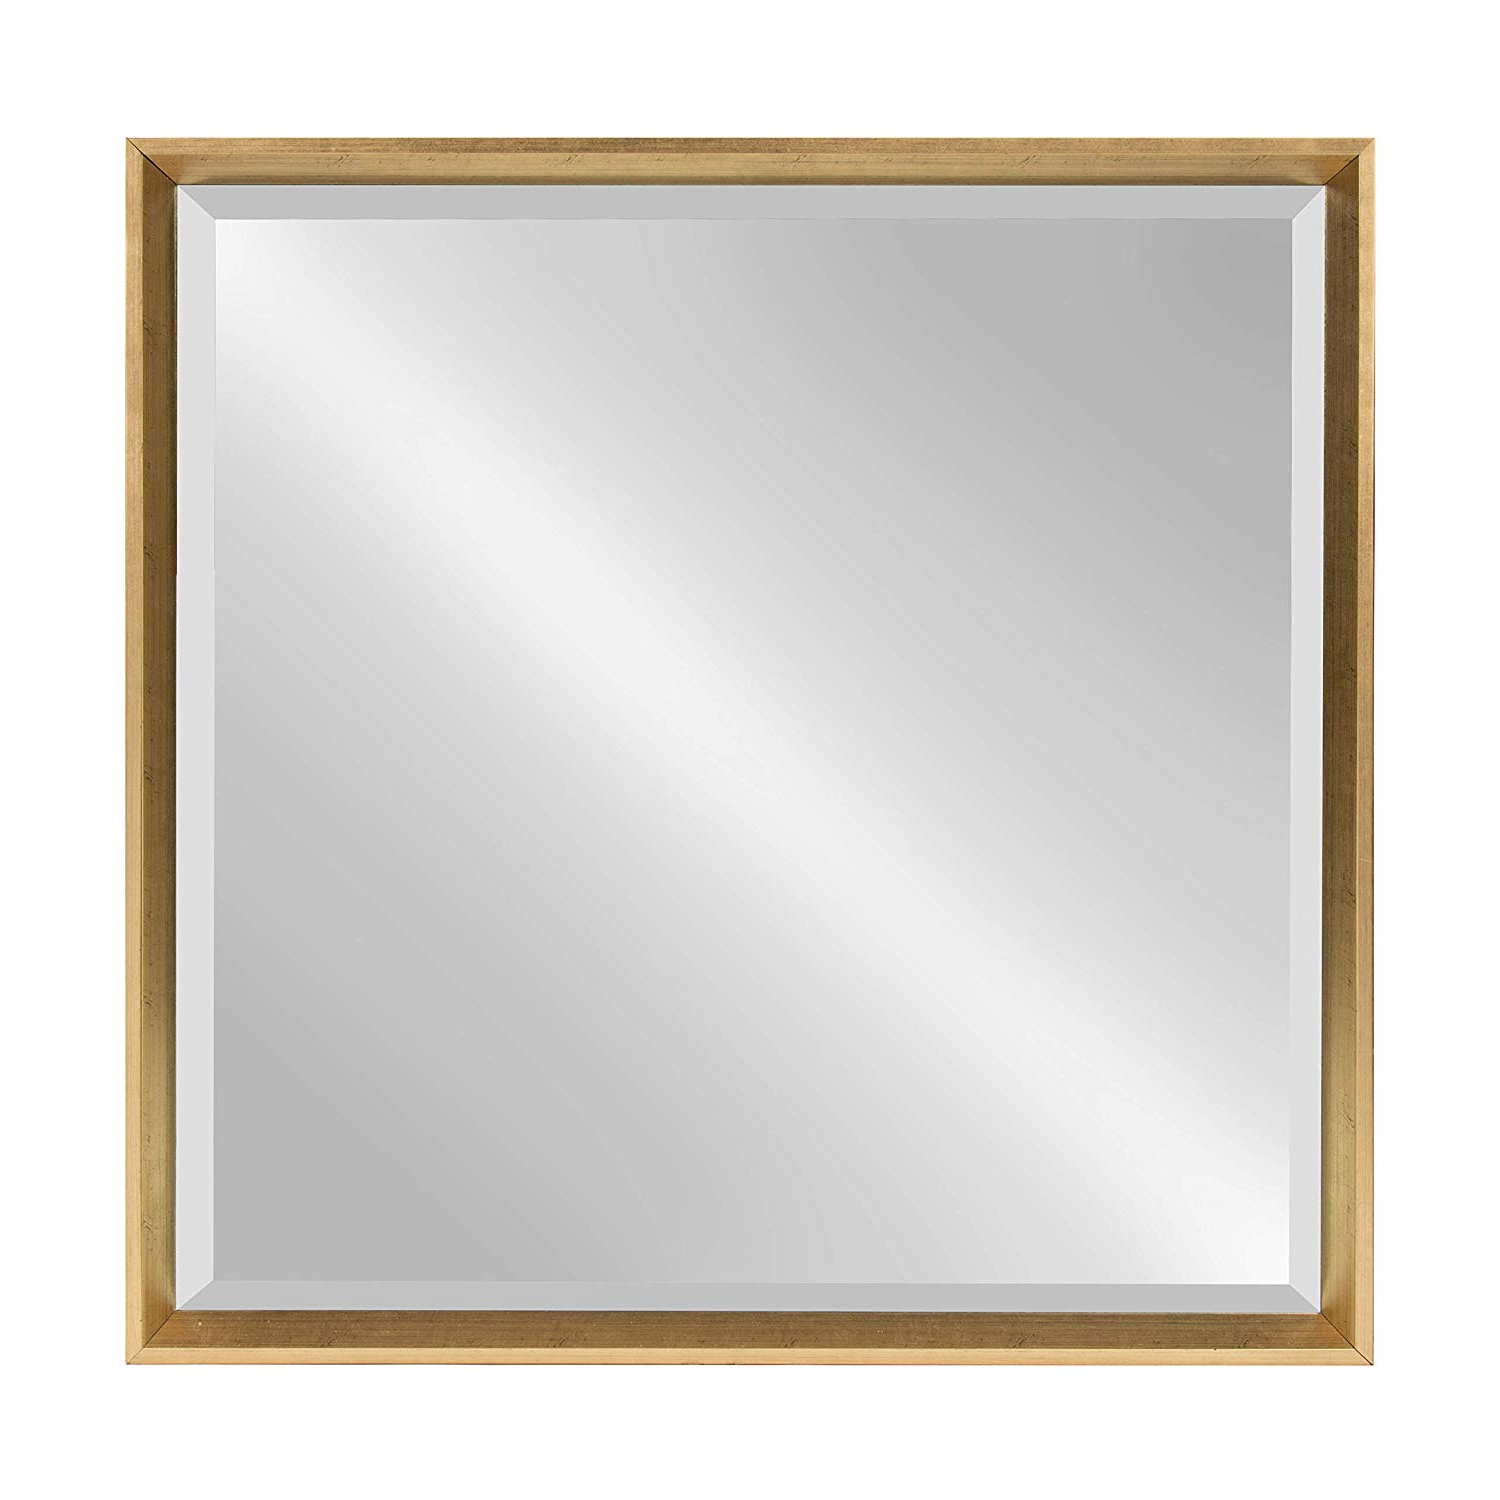 Well Known Kate And Laurel Calter Framed Wall Mirror 28X28 Gold In Inexpensive Large Wall Mirrors (Gallery 20 of 20)